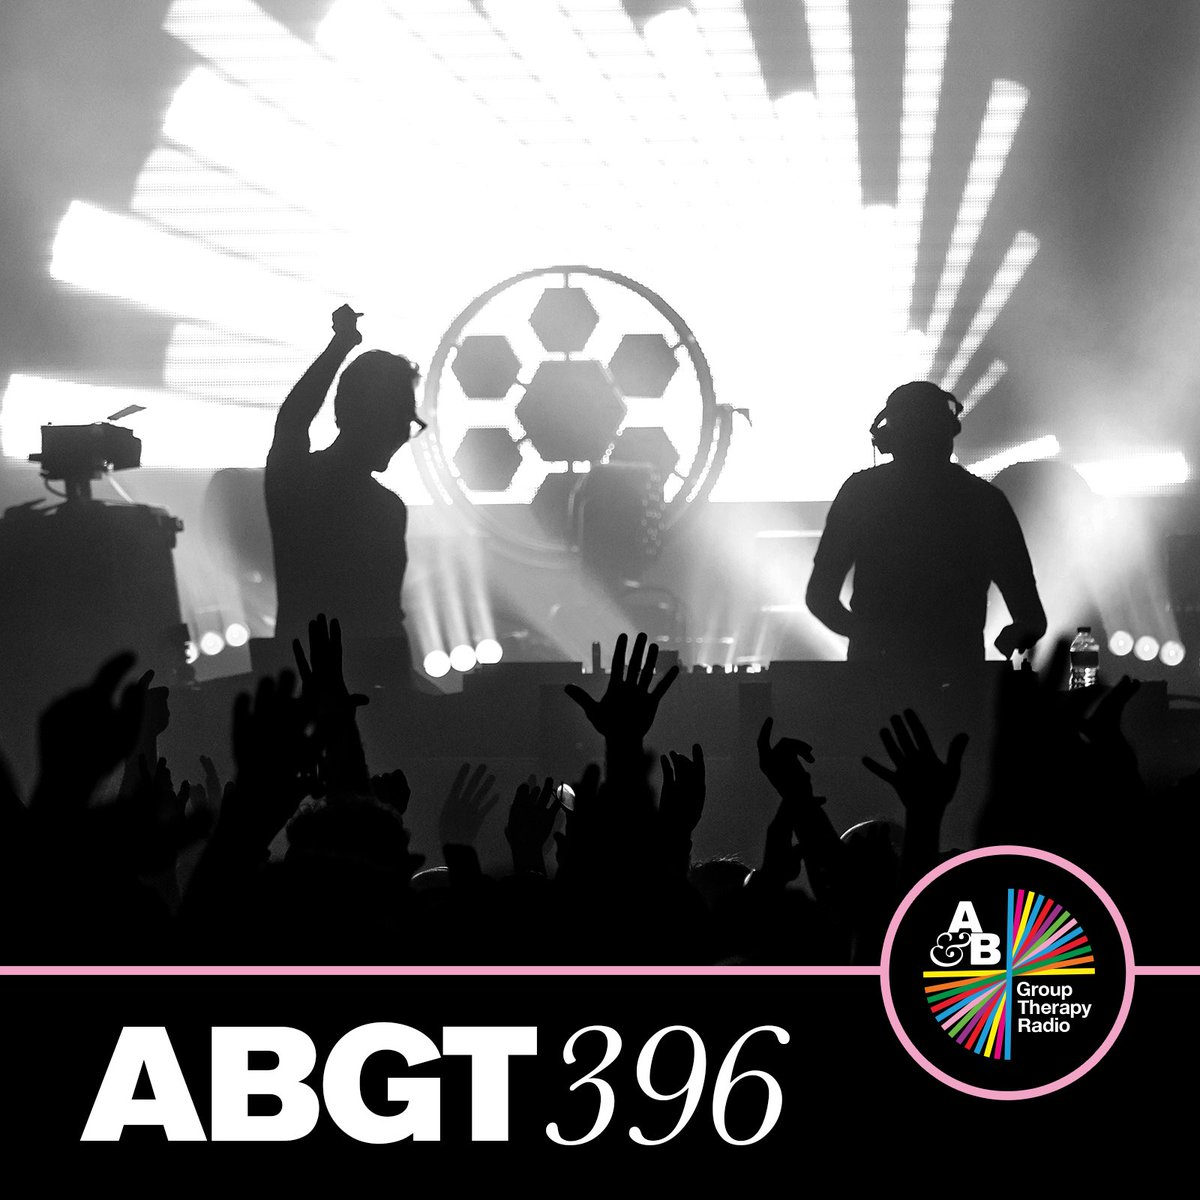 My @abgrouptherapy Guest Mix is only a few hours away! Show starts at 7pm (UK) live on @aboveandbeyond's YouTube and Twitch pages. Enjoy! 🎧 https://t.co/P4AyeMrQcG